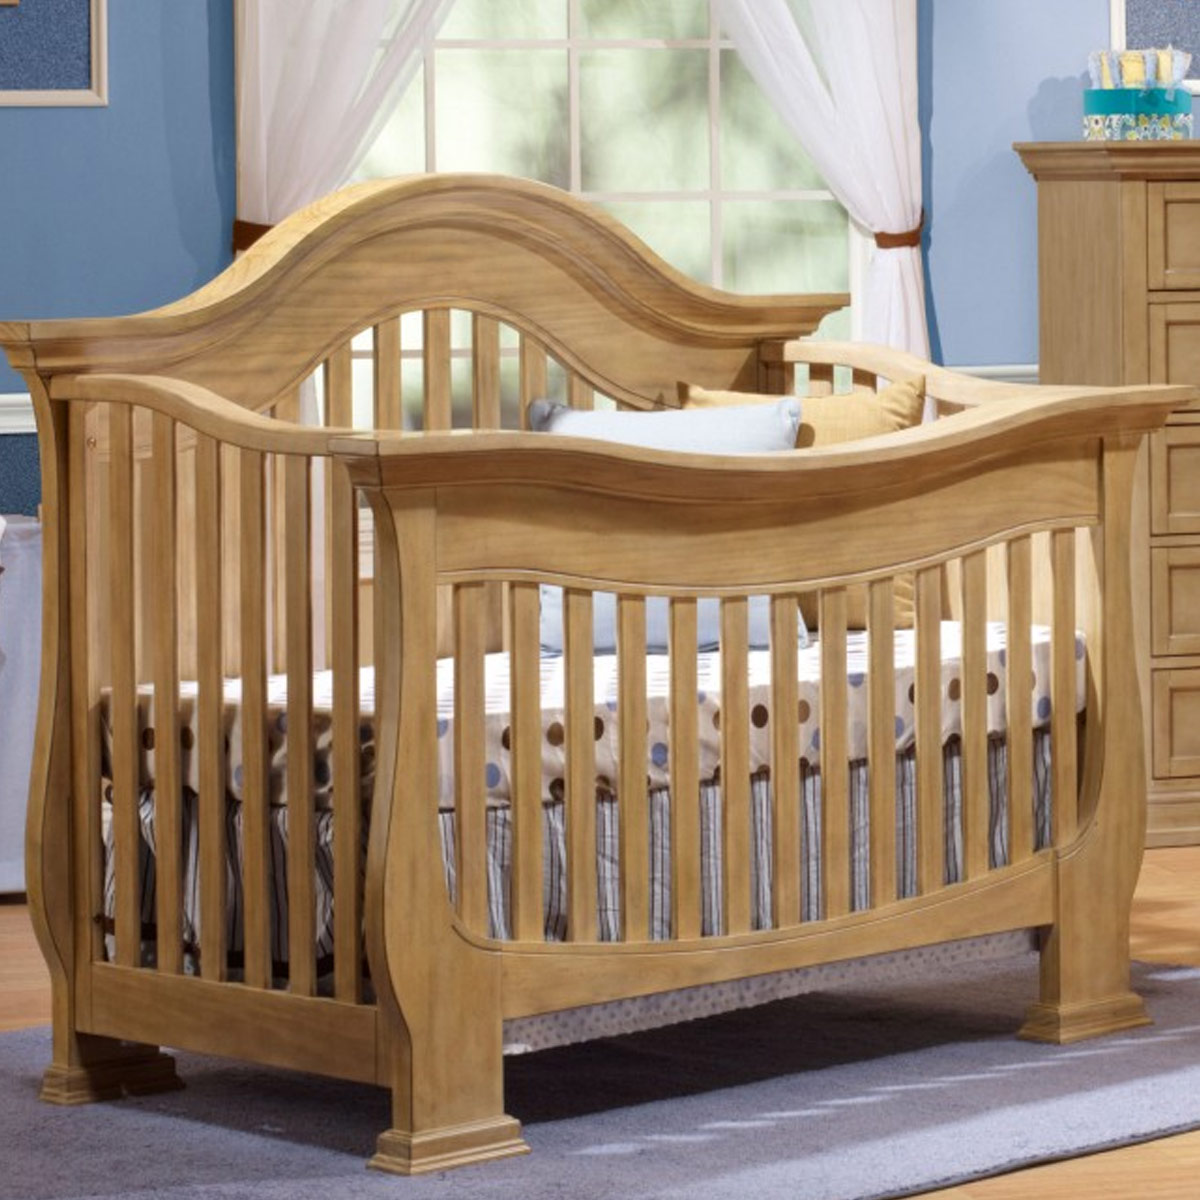 meet convertible cribs in pembrooke is light fresh wood crib the designed baby to of all